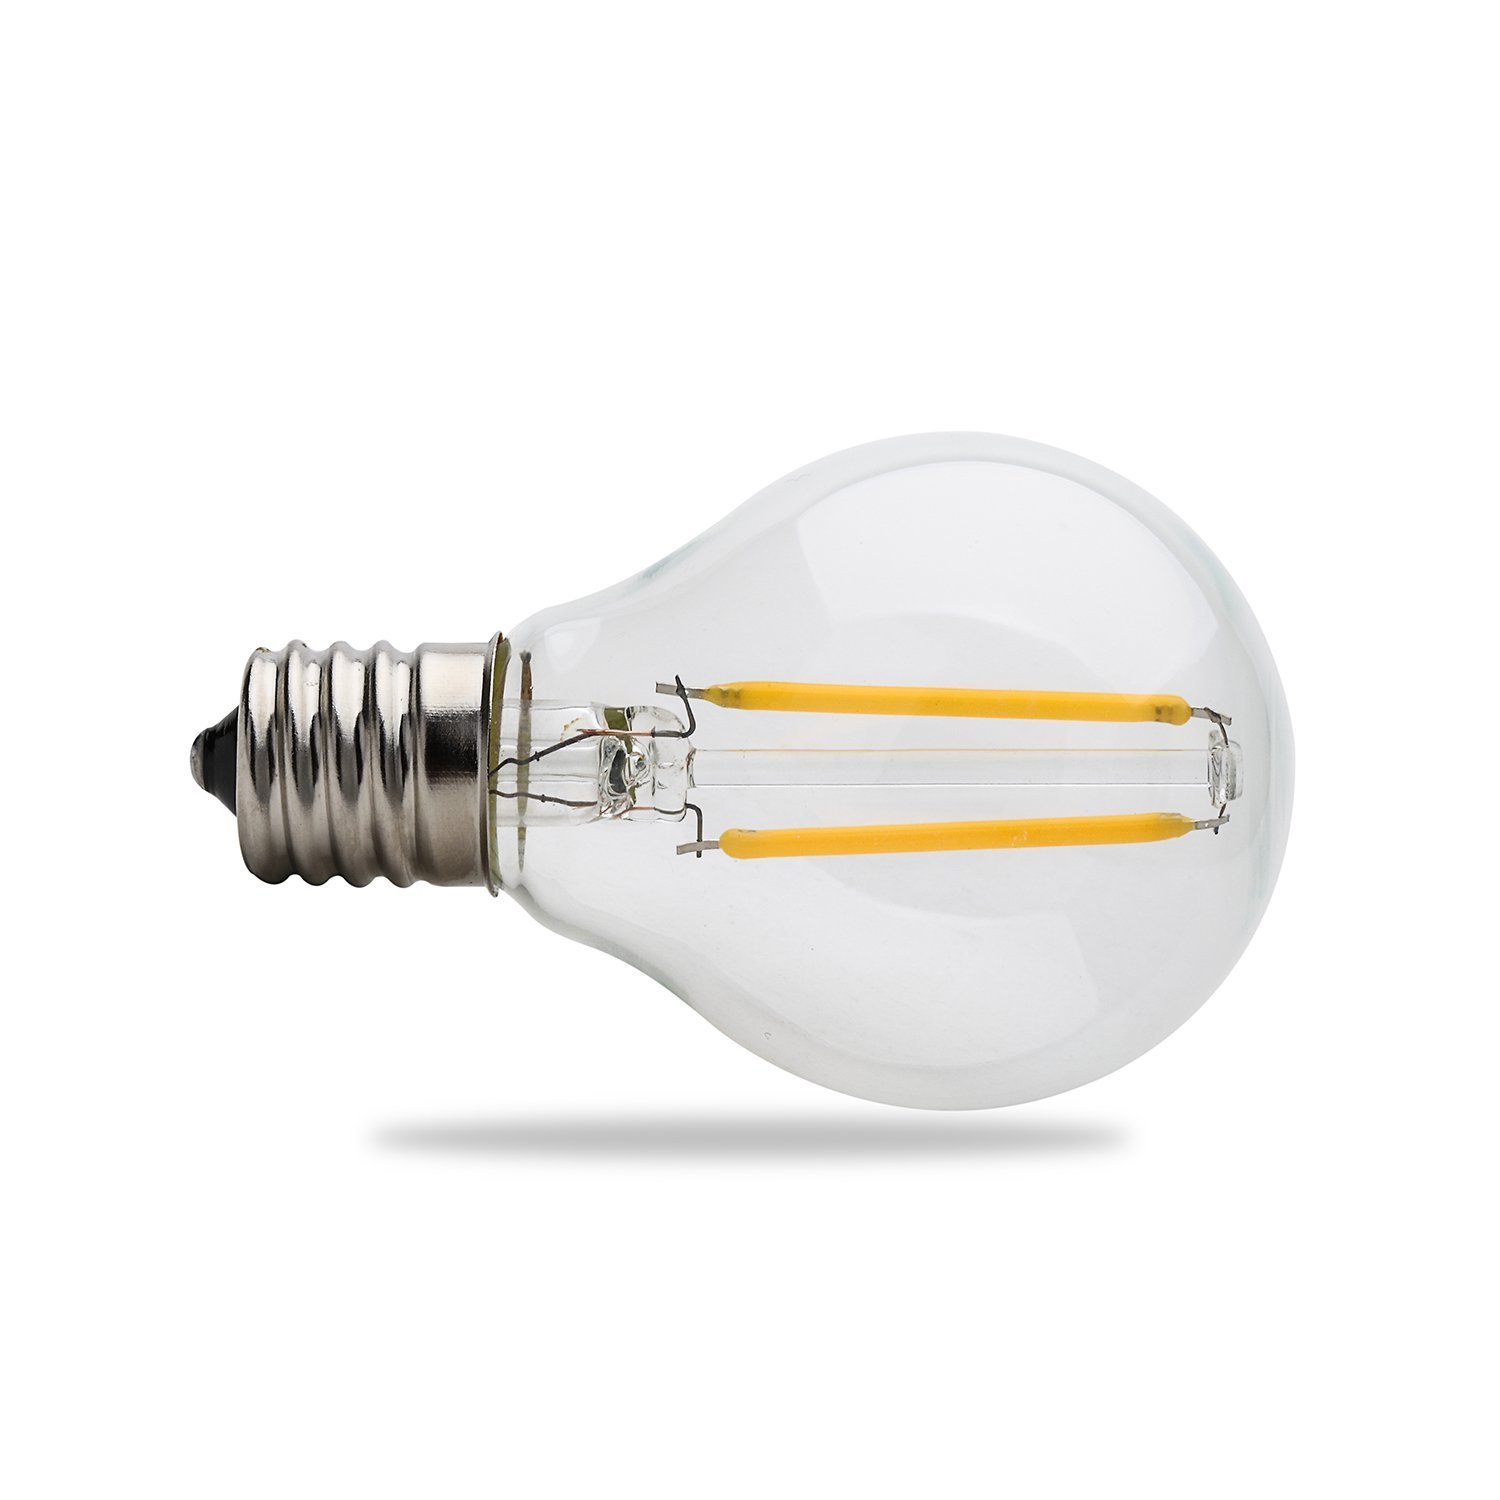 WEANAS 8 x E17 G45 LED Filament Bulbs AC 110V 2W, Globe String Lights Replacement Bulbs by Weanas